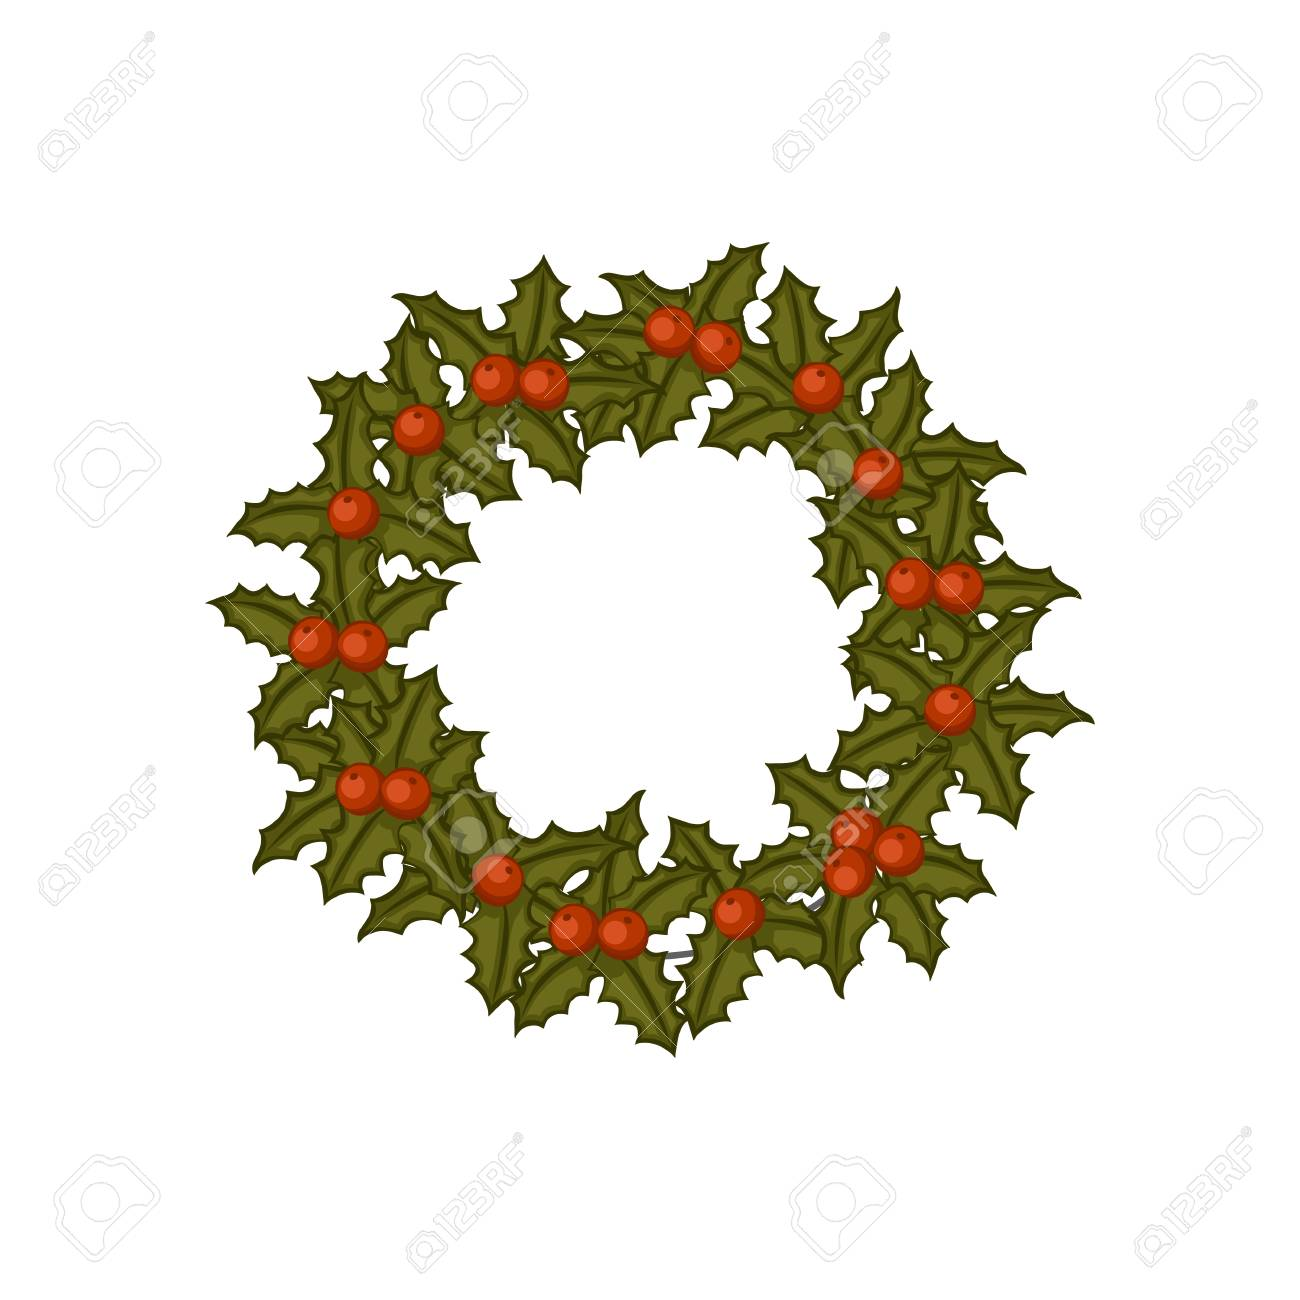 Christmas Wreath With Mistletoe Cartoon Icon Vector Illustration Royalty Free Cliparts Vectors And Stock Illustration Image 91244966